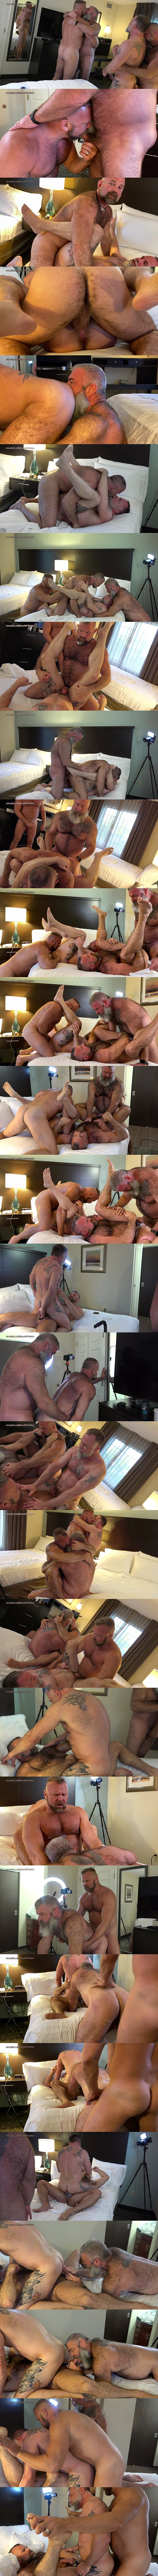 Musclebearporn - Hairy muscle bears, two real couple Thor Buckner, Tigerpouncer, Will Angell and Liam Angell bareback each other in Husband Swap Part 1 02